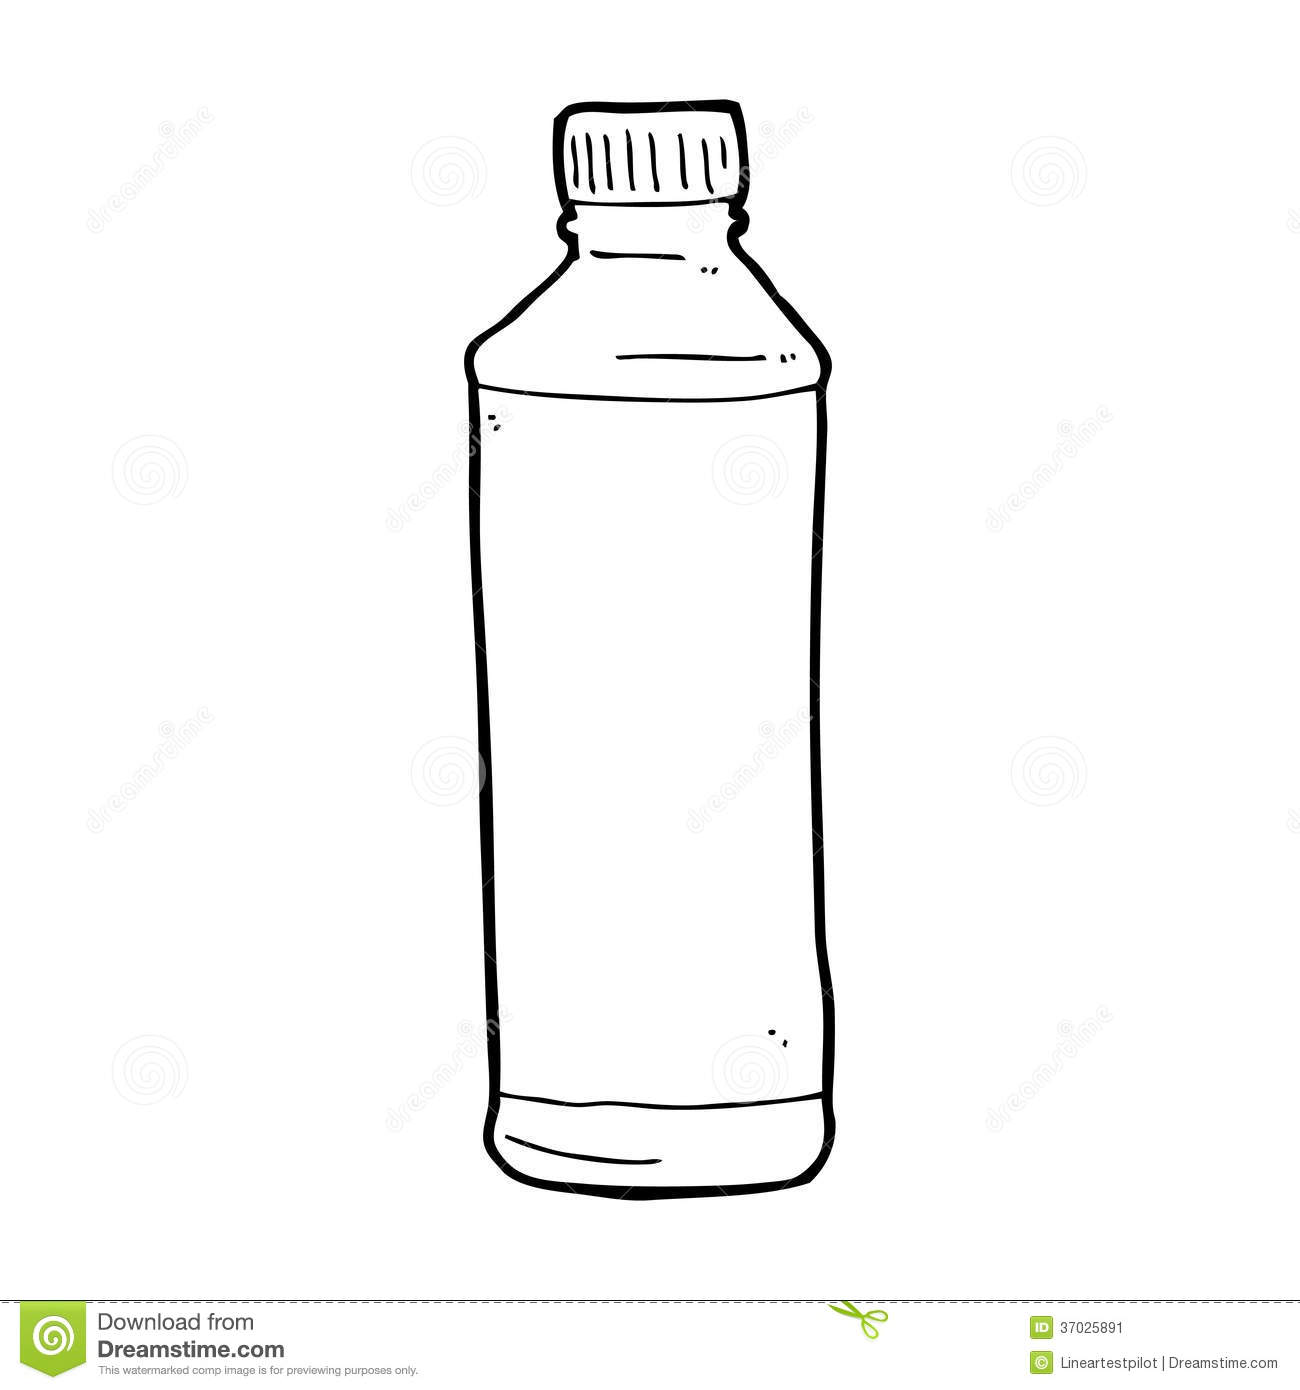 Waterbottle clipart black and white vector freeuse stock Water bottle clipart black and white 4 » Clipart Station vector freeuse stock